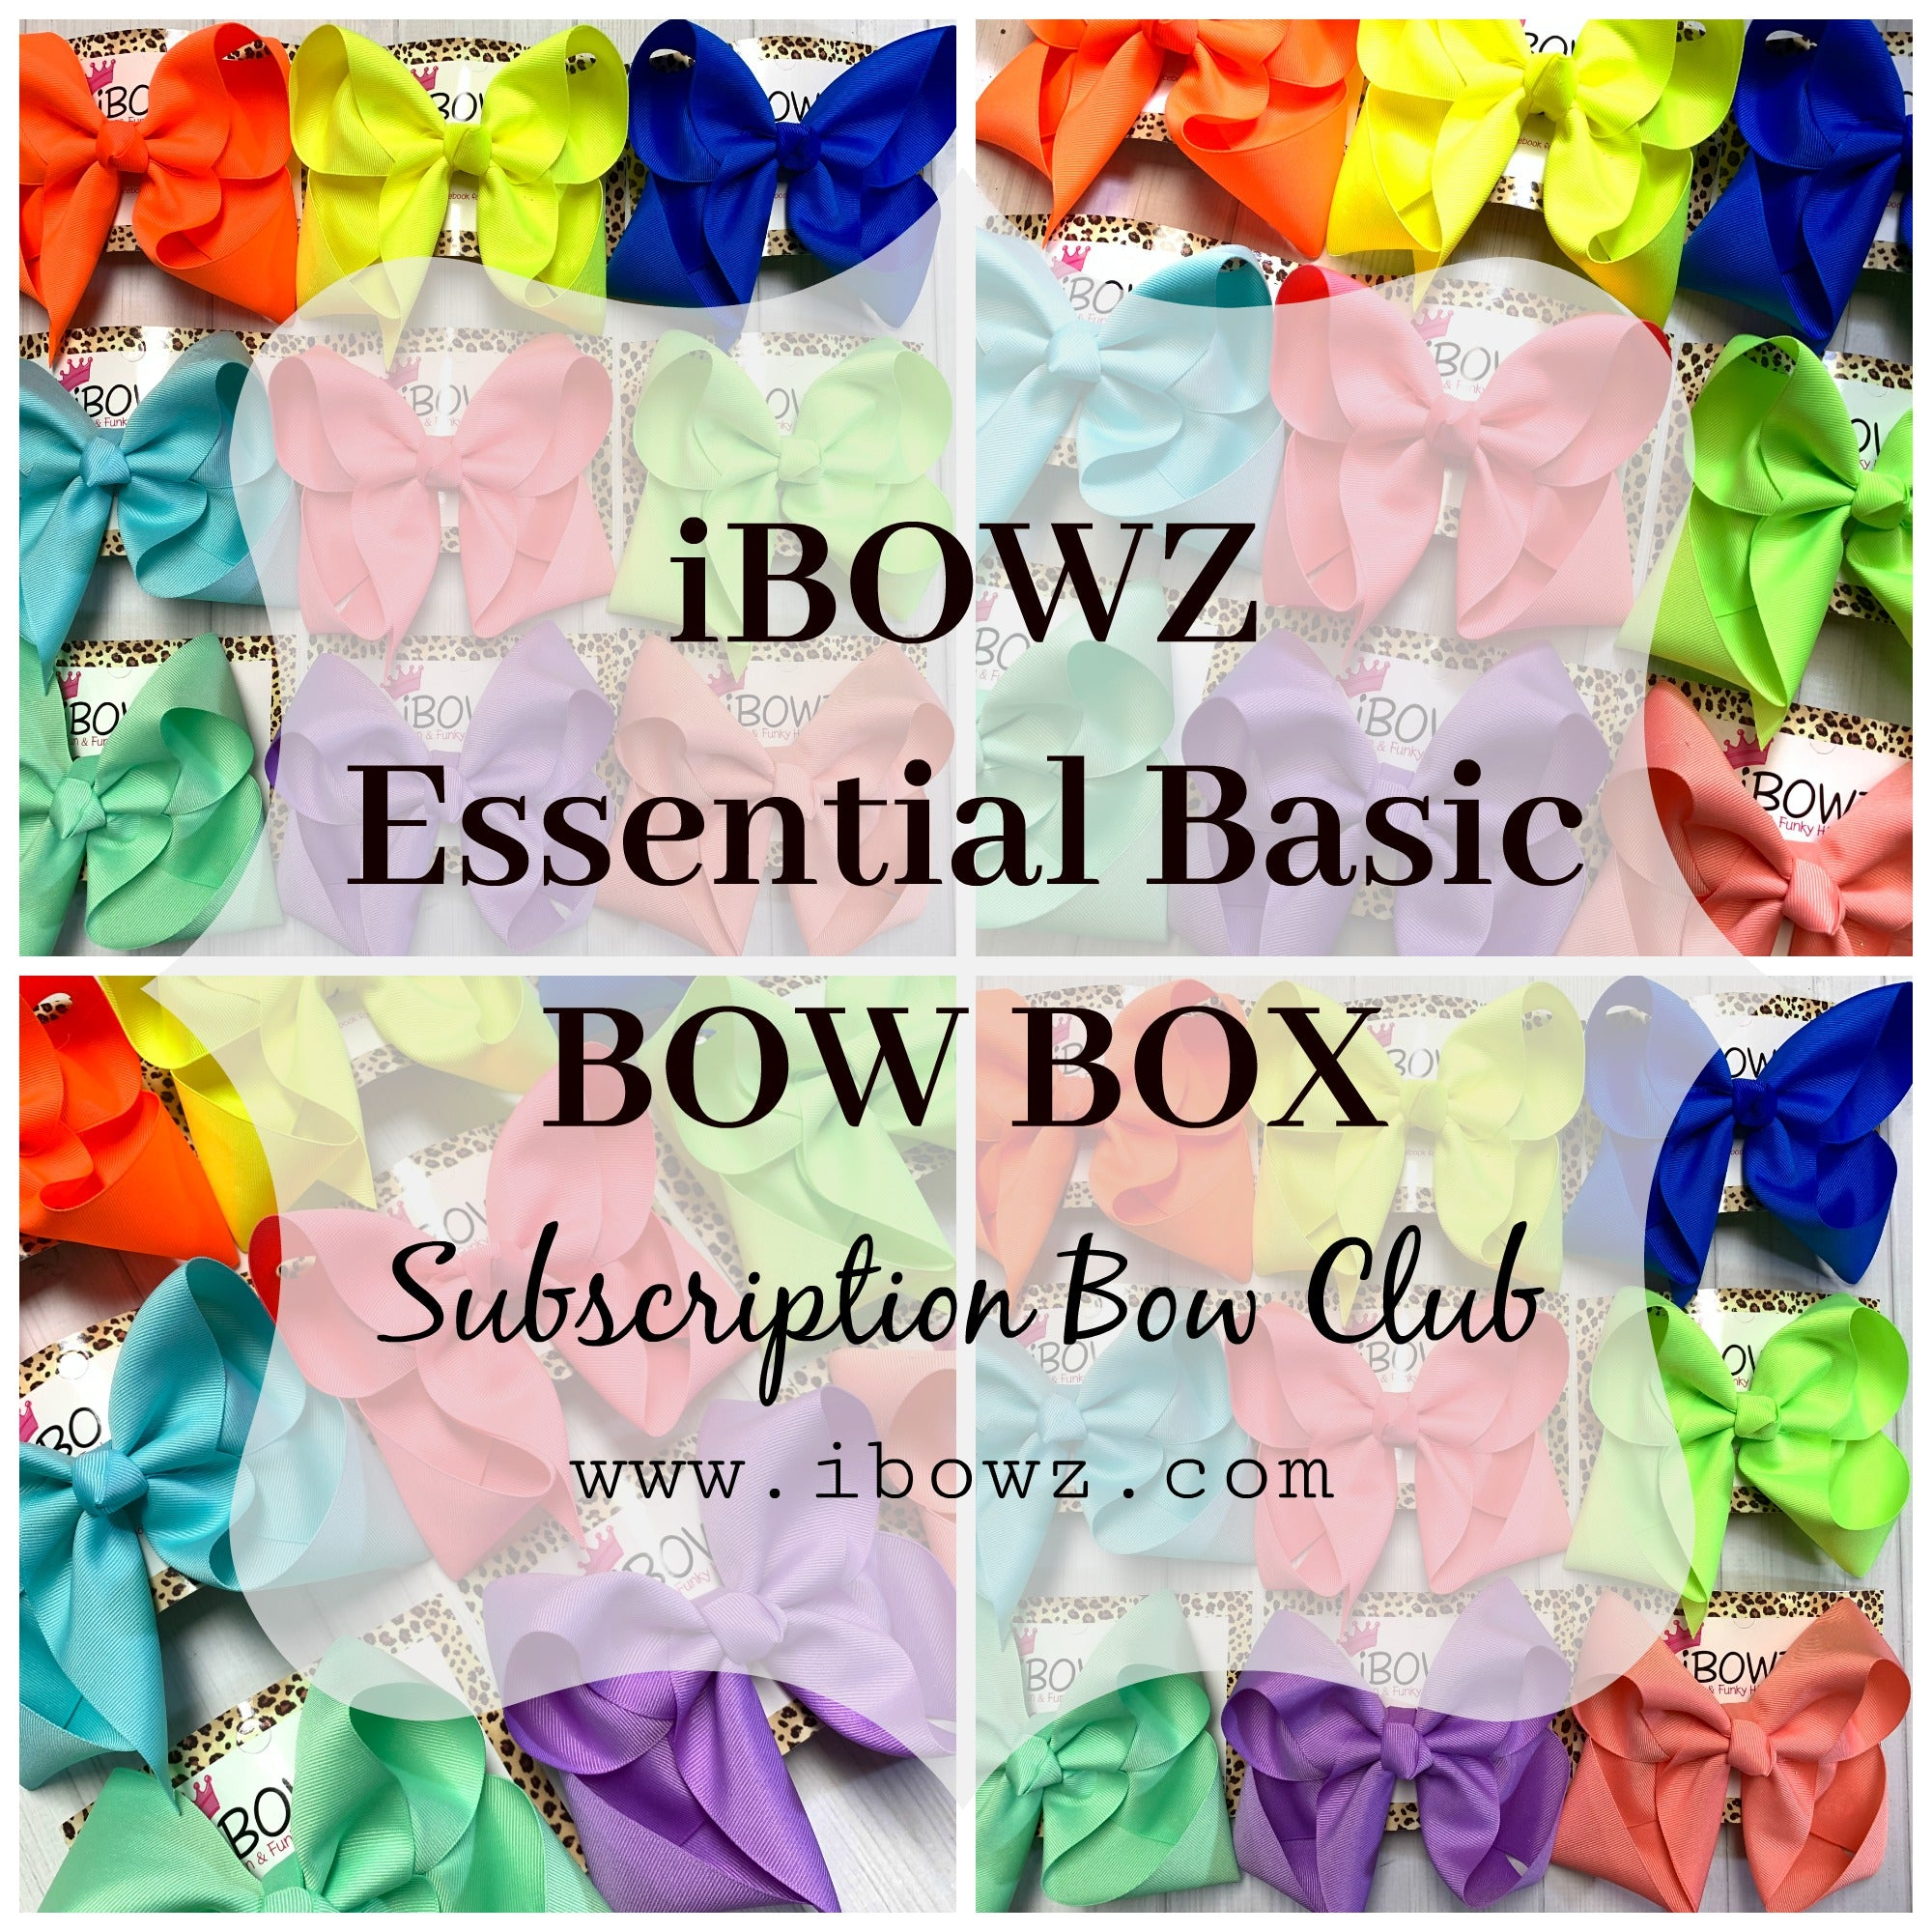 The Essential Basic Bow Box ~ The Monthly Subscription Bow Box ~ iBOWZ Fun & Funky Hairbows